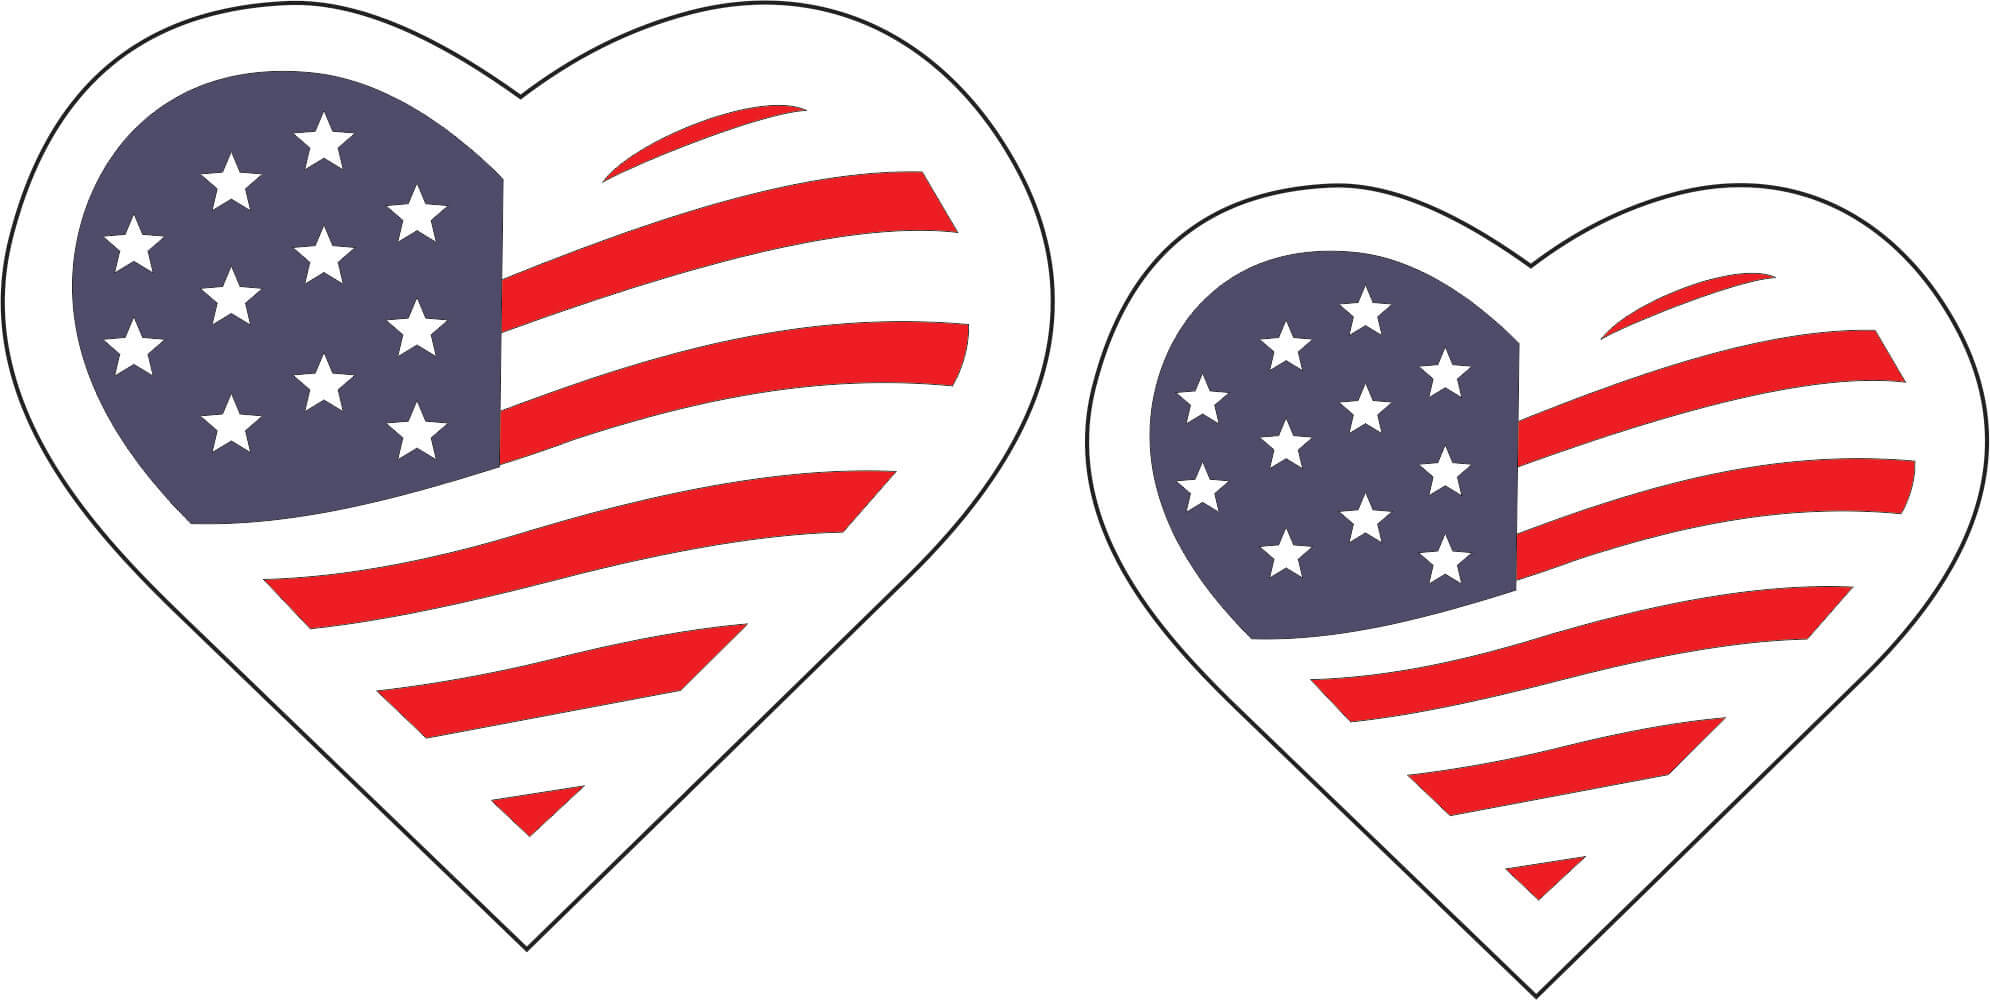 Patriotic Hearts (set of 2)